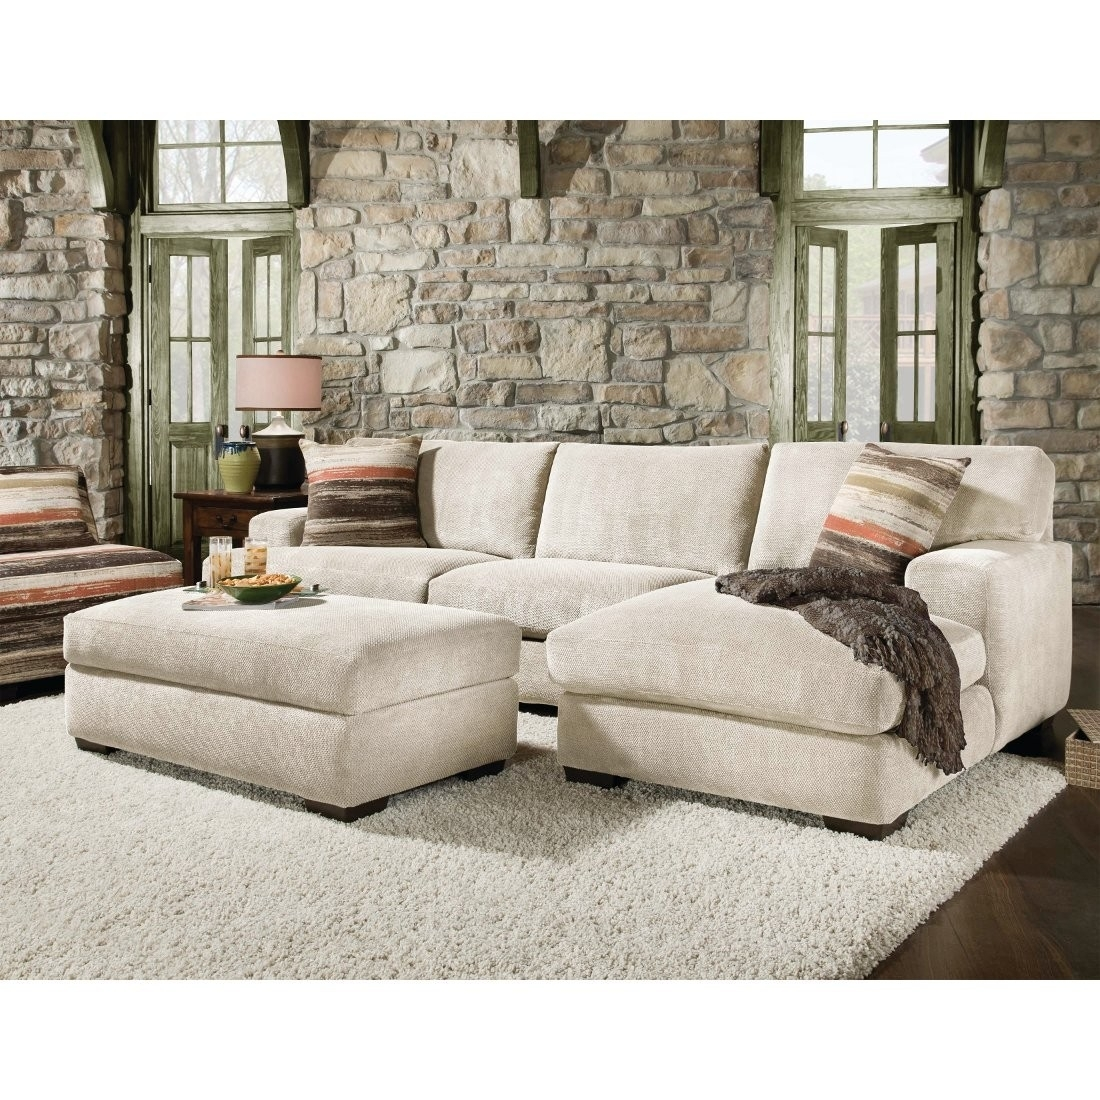 Sectional Sofa Design: Sectional Sofa With Chaise And Ottoman Sofas Throughout Sectionals With Chaise And Ottoman (Image 6 of 10)